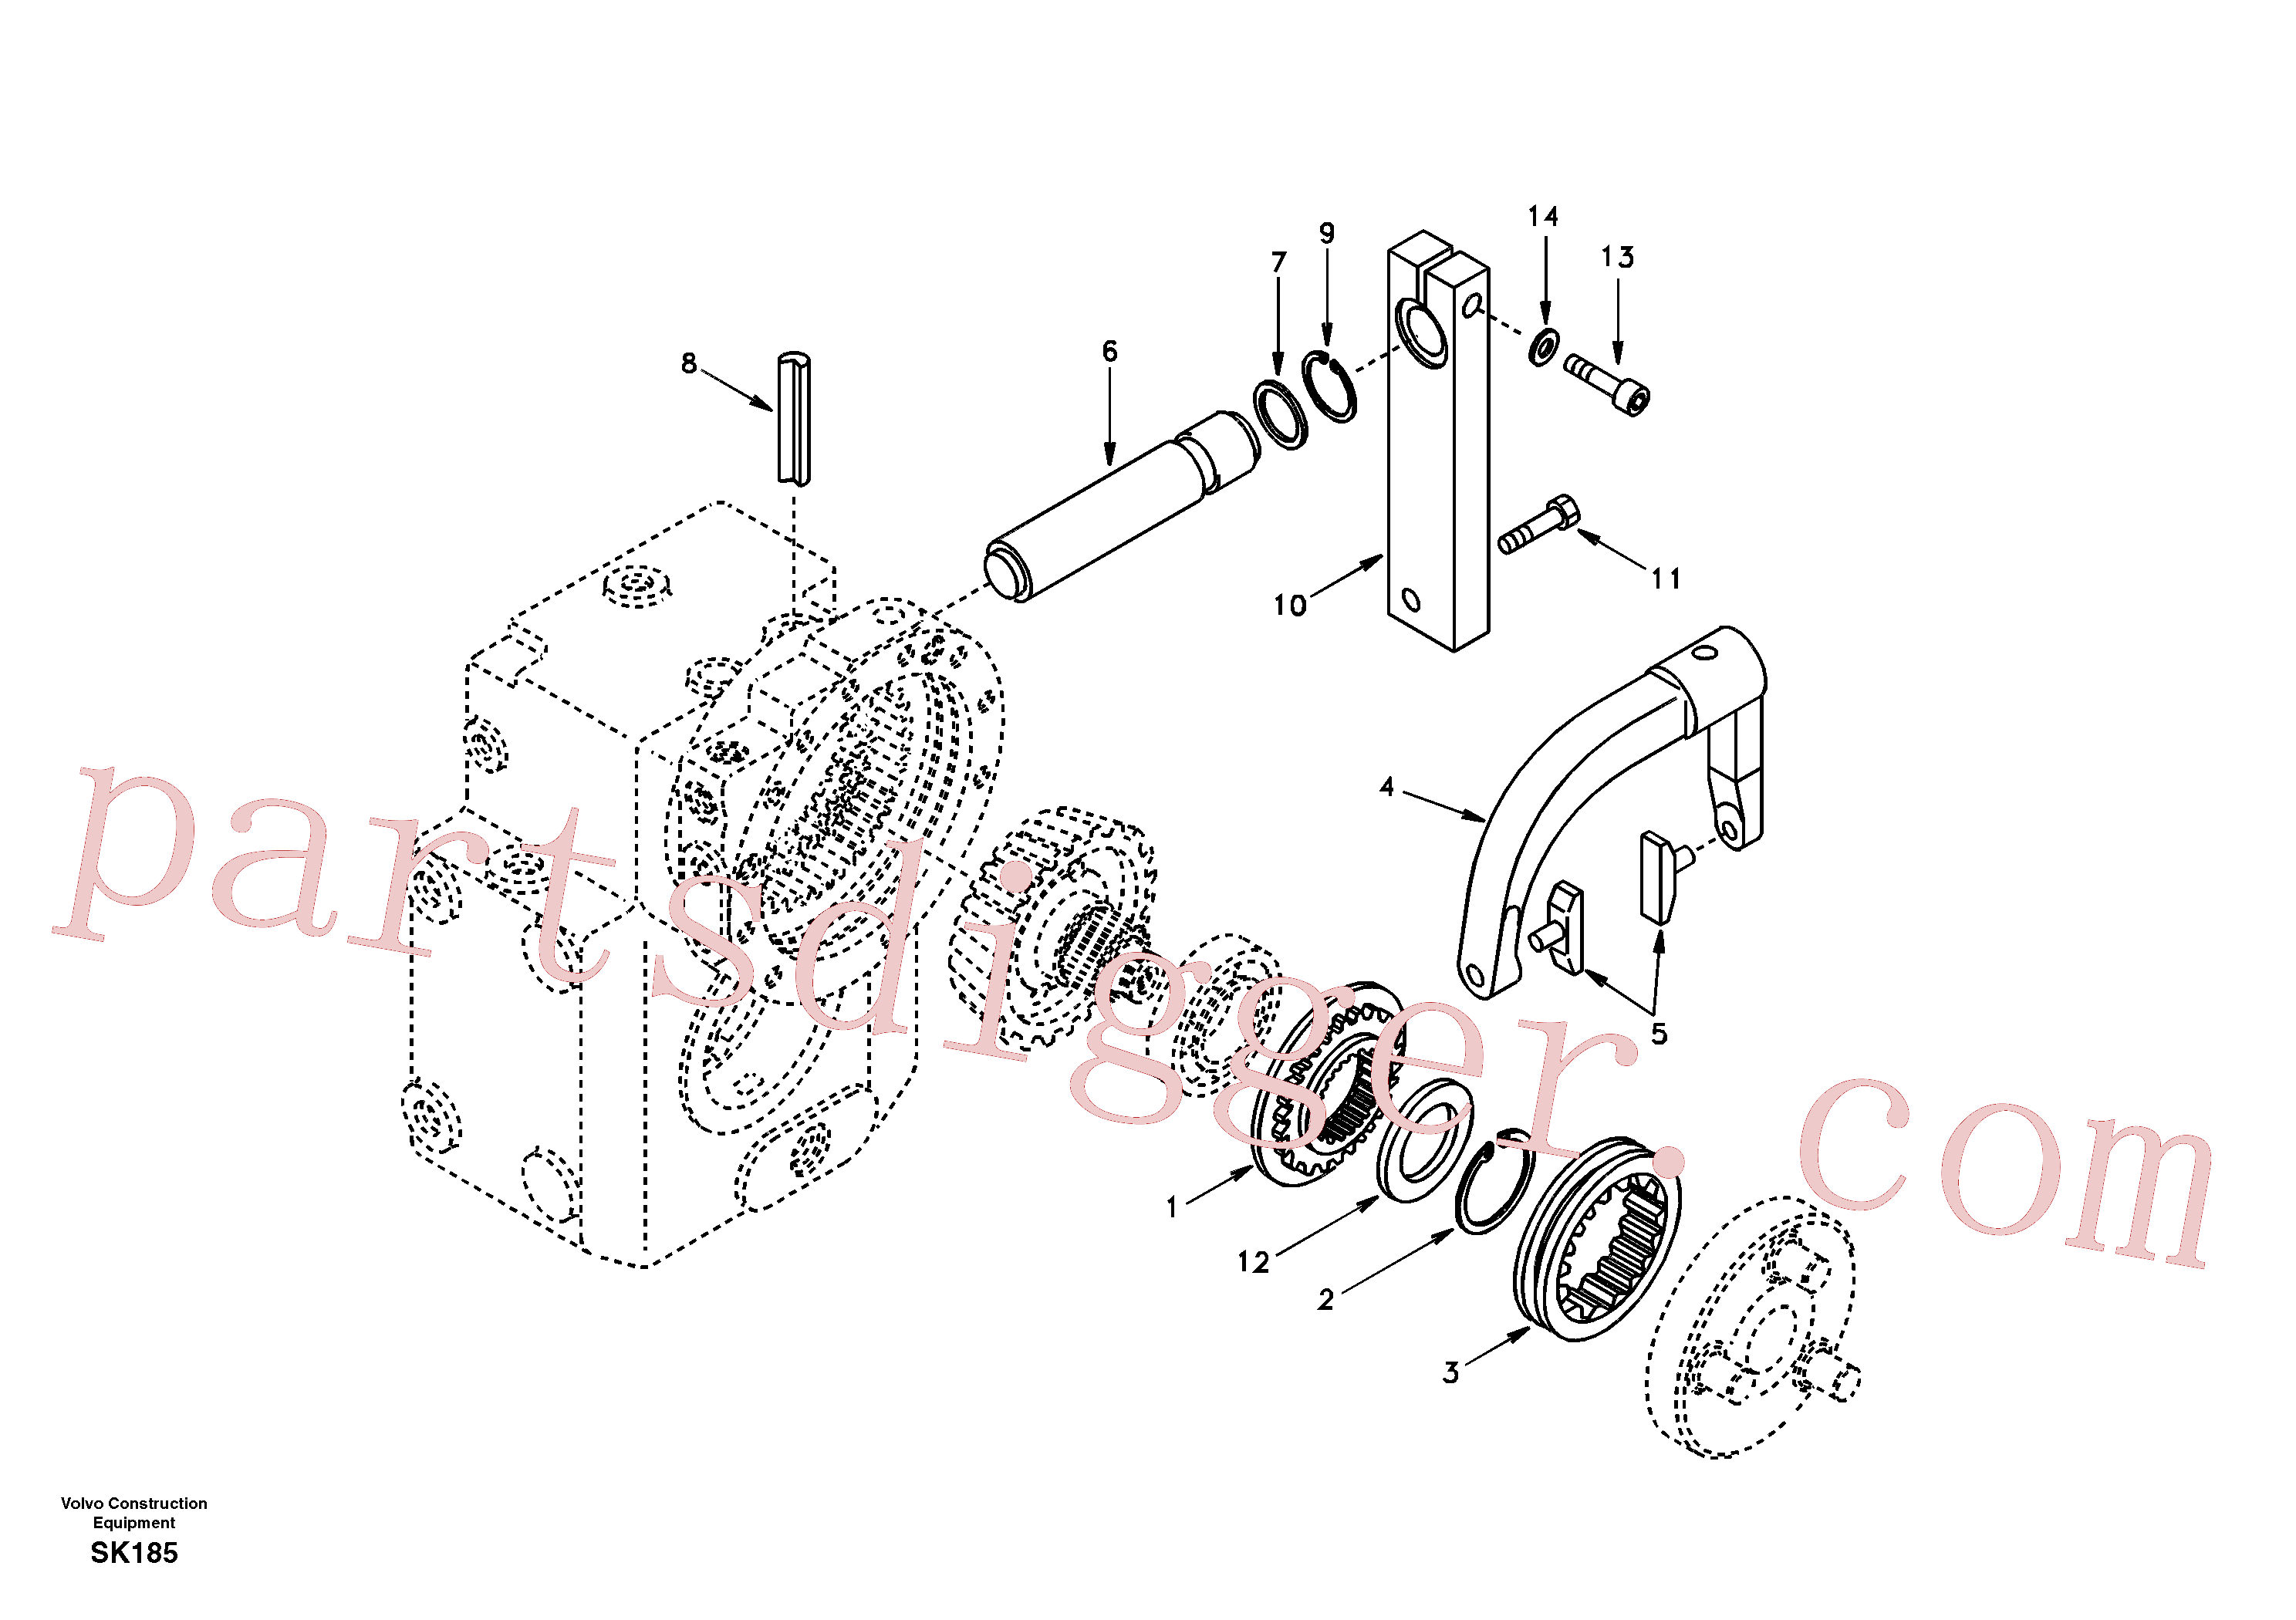 VOE6635205 for Volvo Disconnection(SK185 assembly)